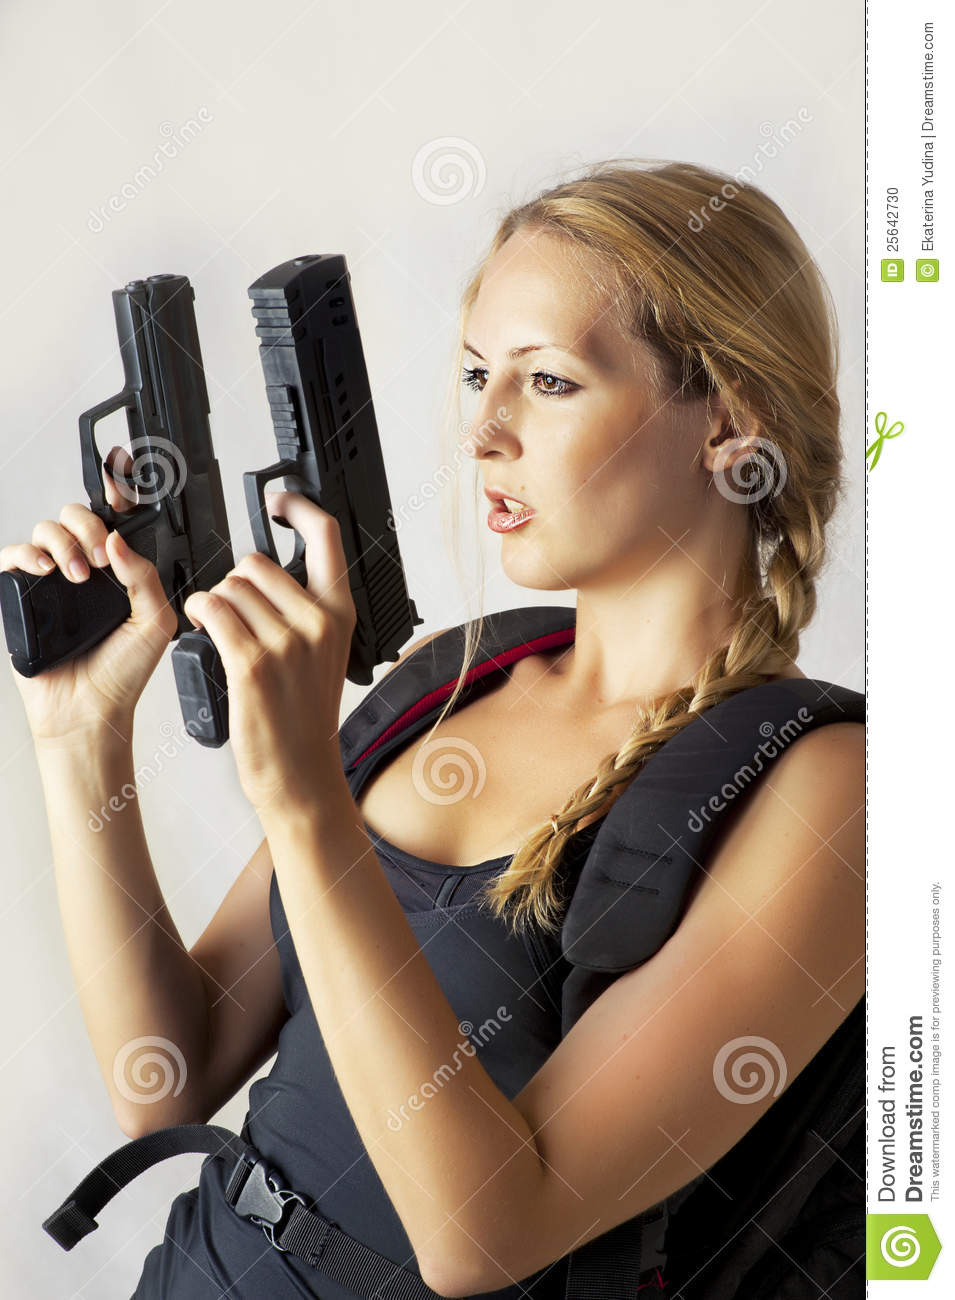 Woman Holding Two Hand Gun Stock Photo - Image: 25642730